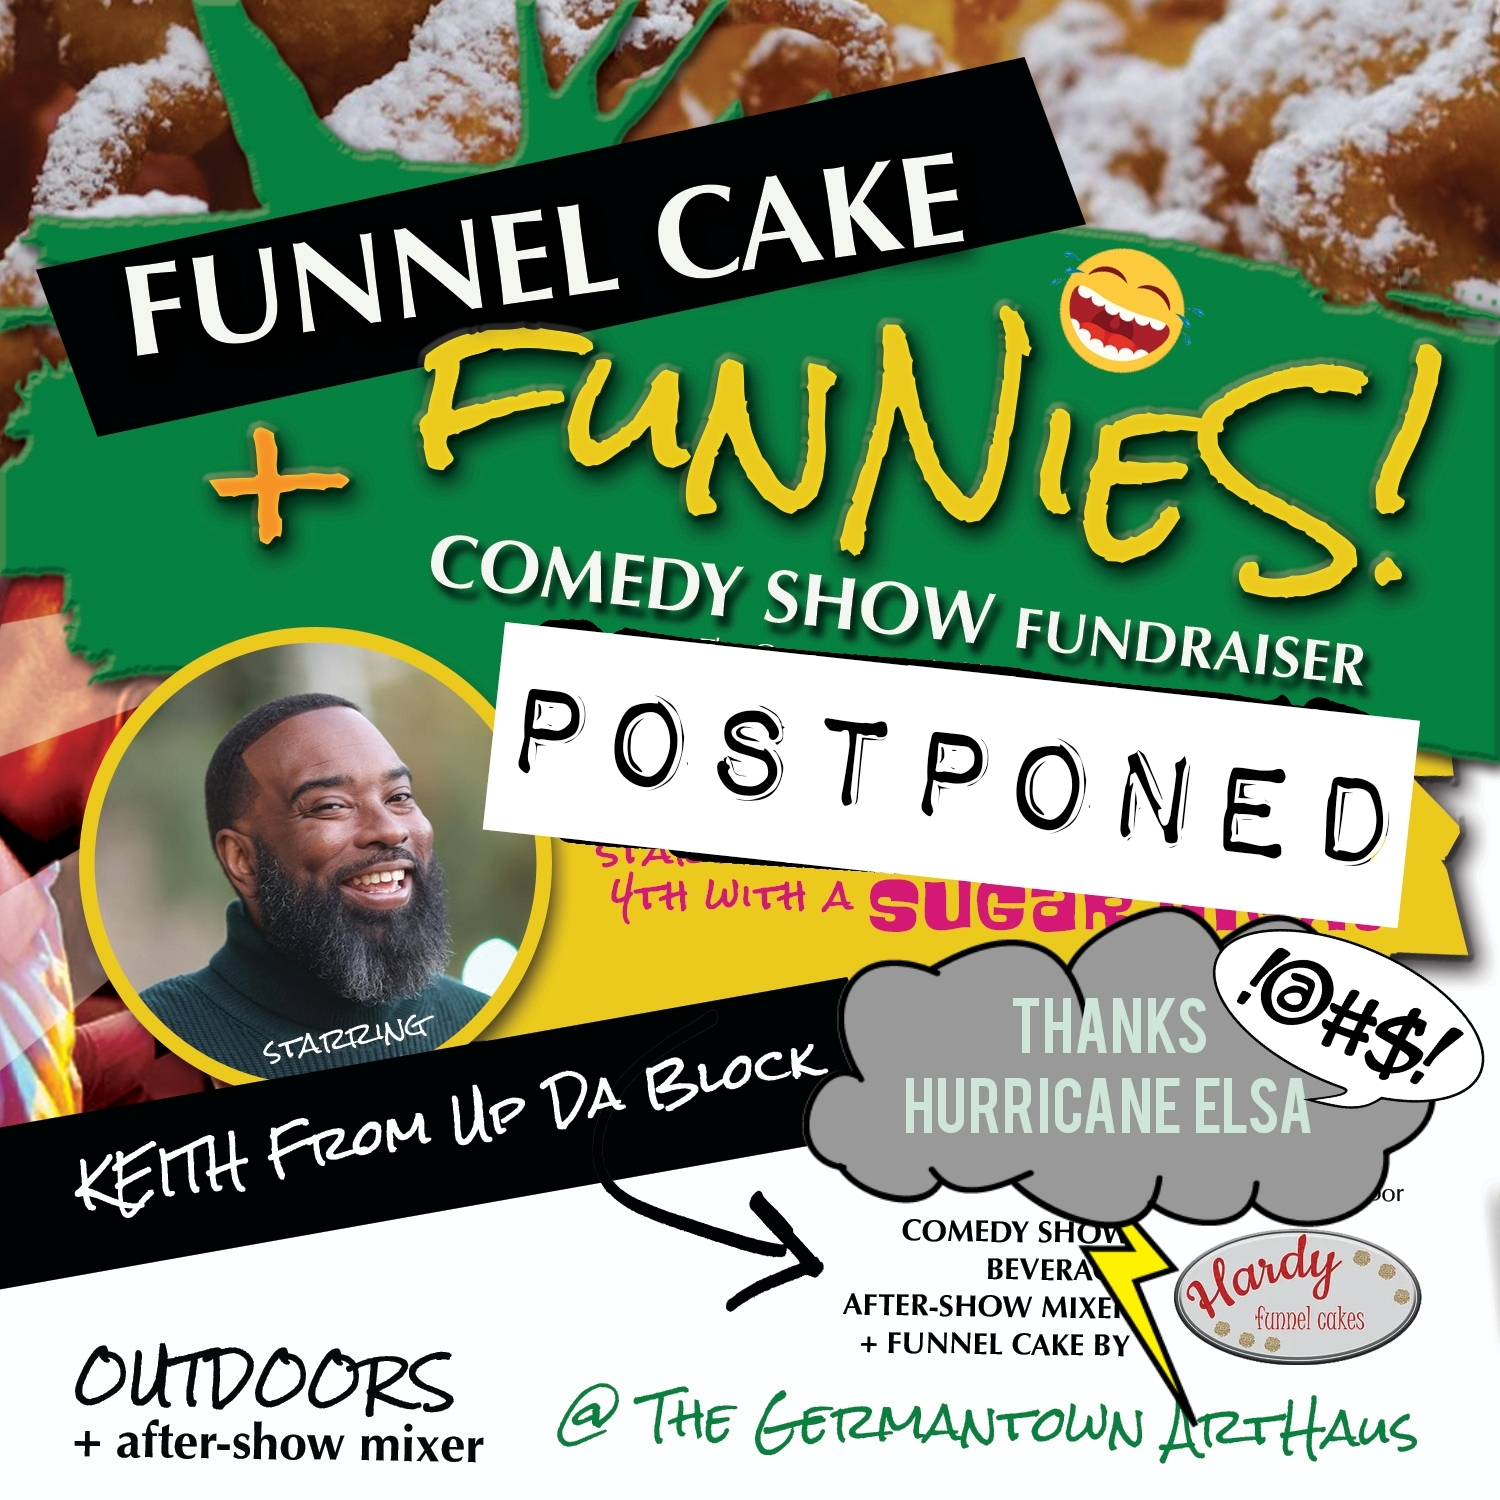 Comedy Show Postponed graphis